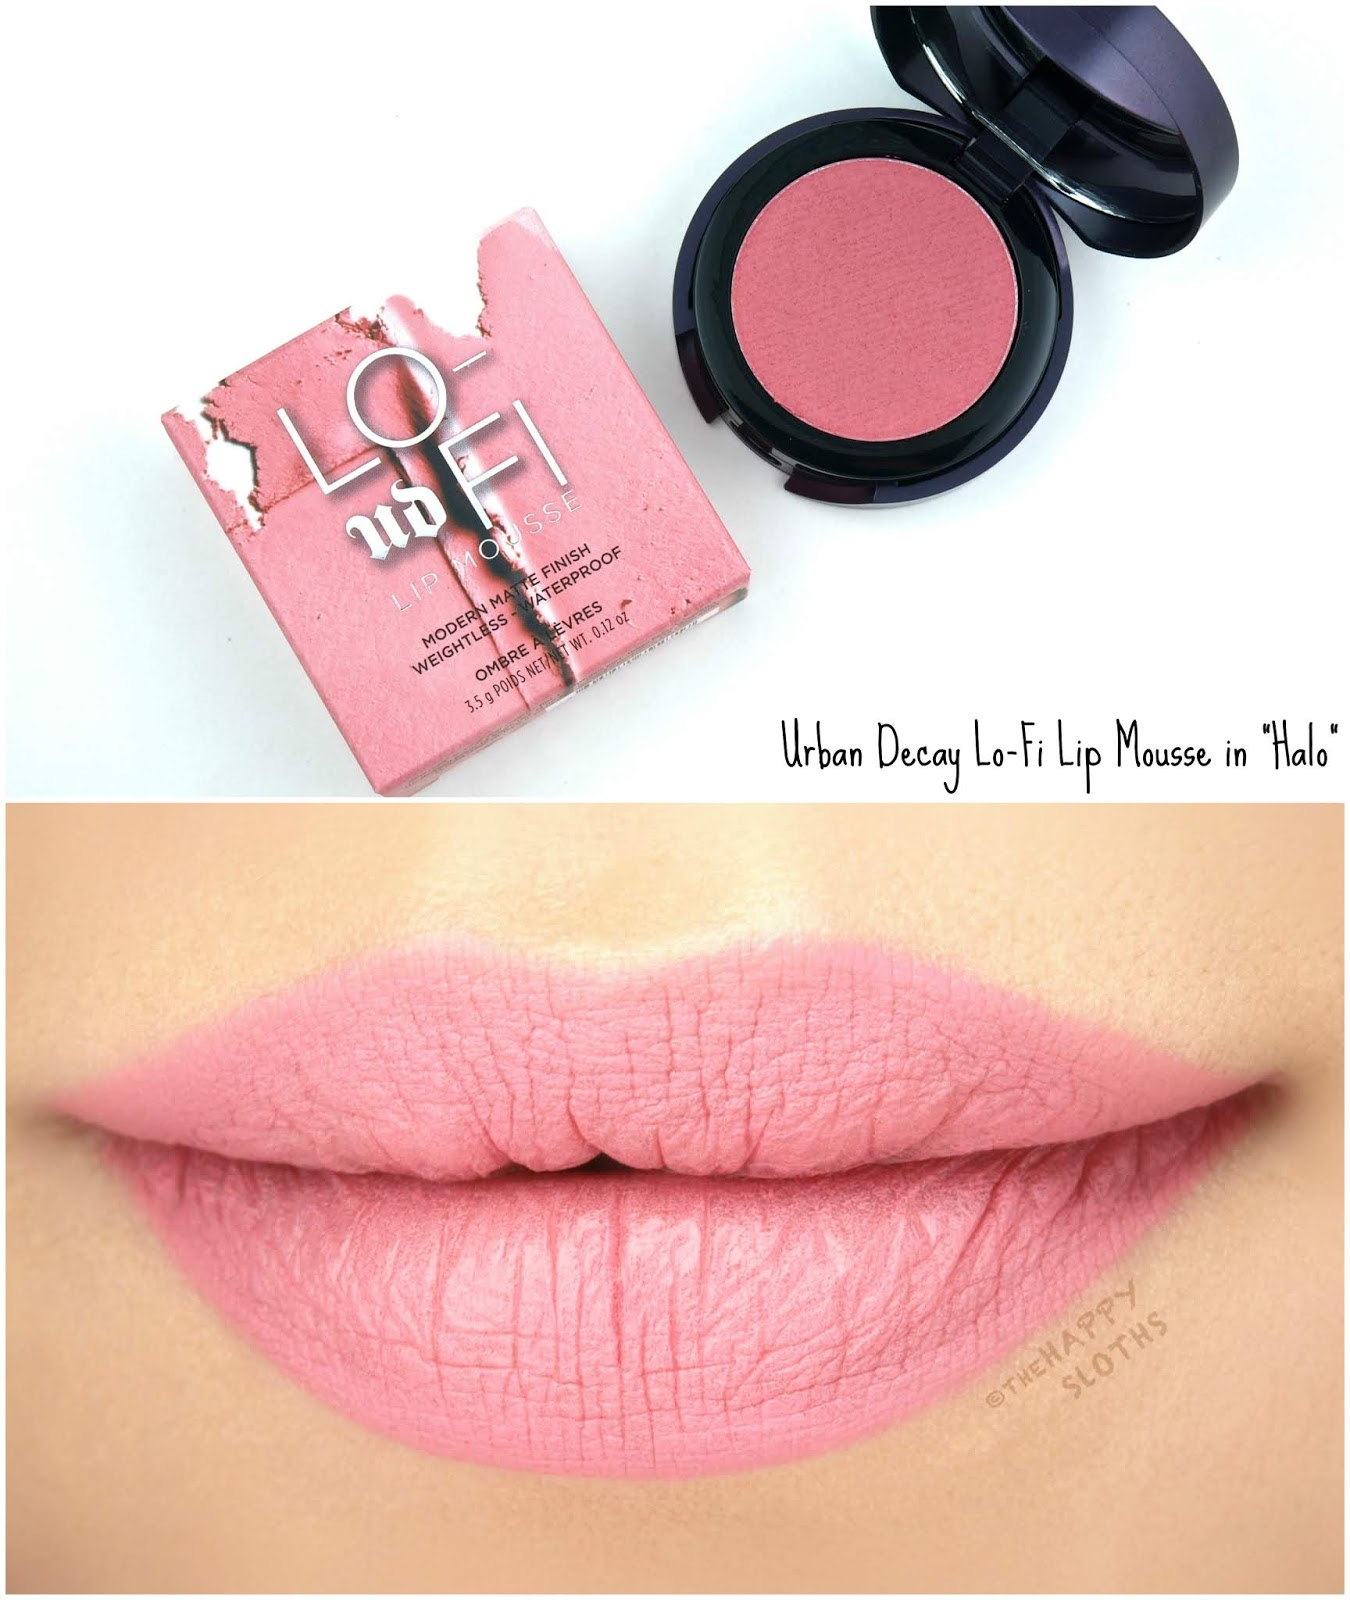 "Urban Decay | Lo-Fi Lip Mousse in ""Halo"": Review and Swatches"